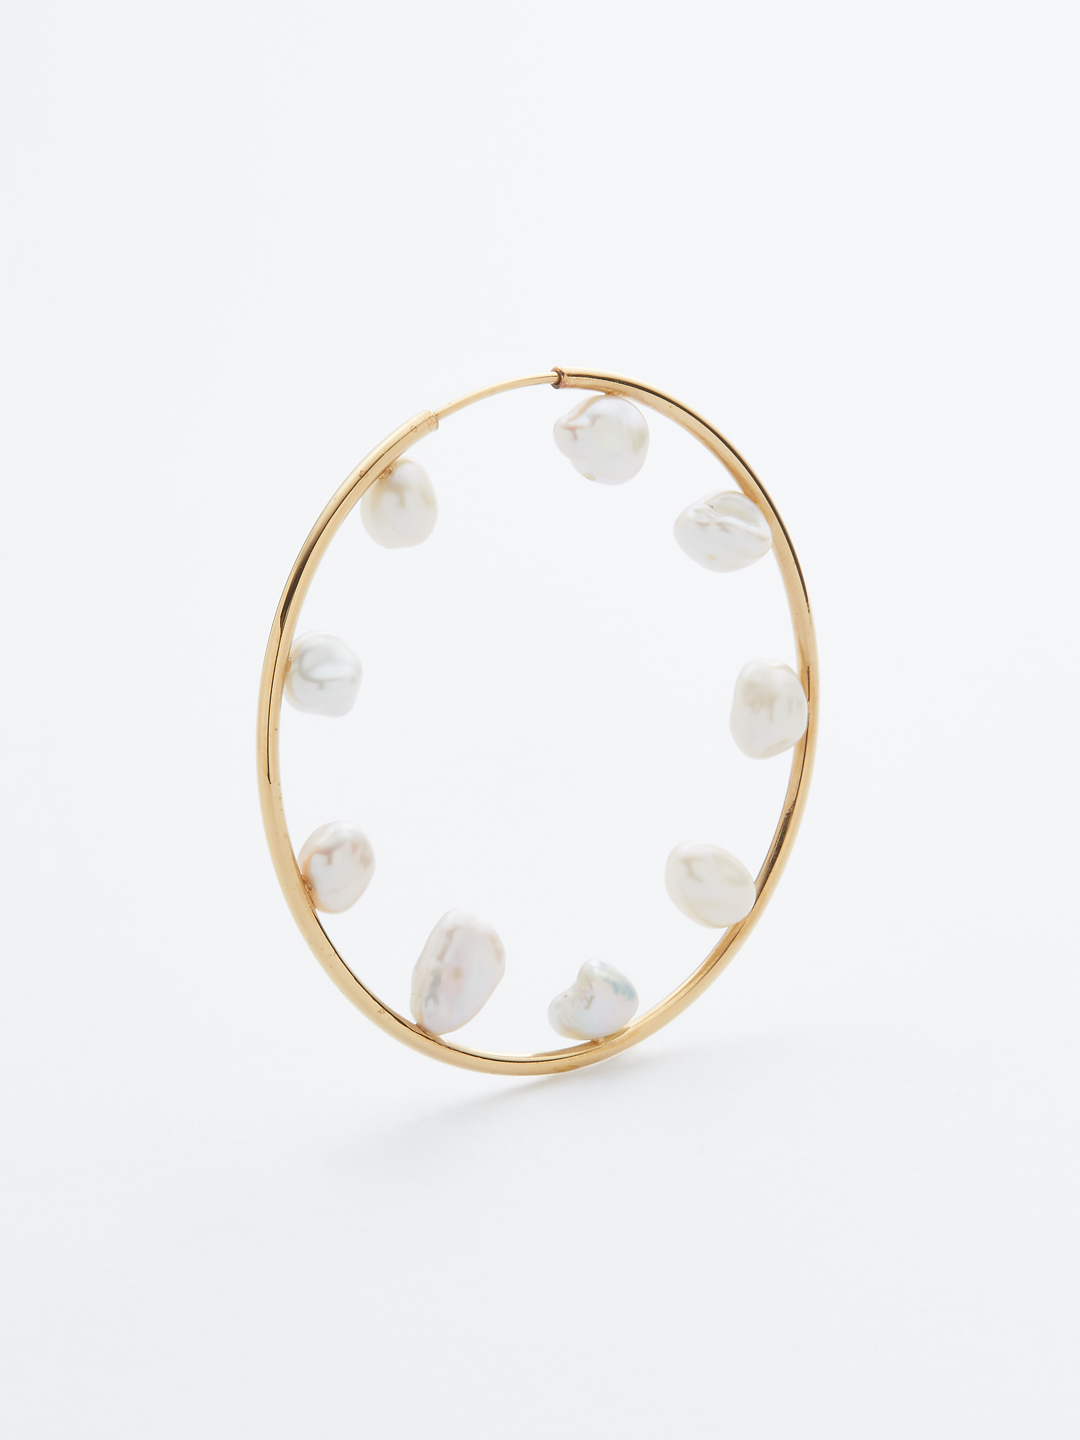 Secret Garden 50 Hoop Pierced Earring - Gold High Polish